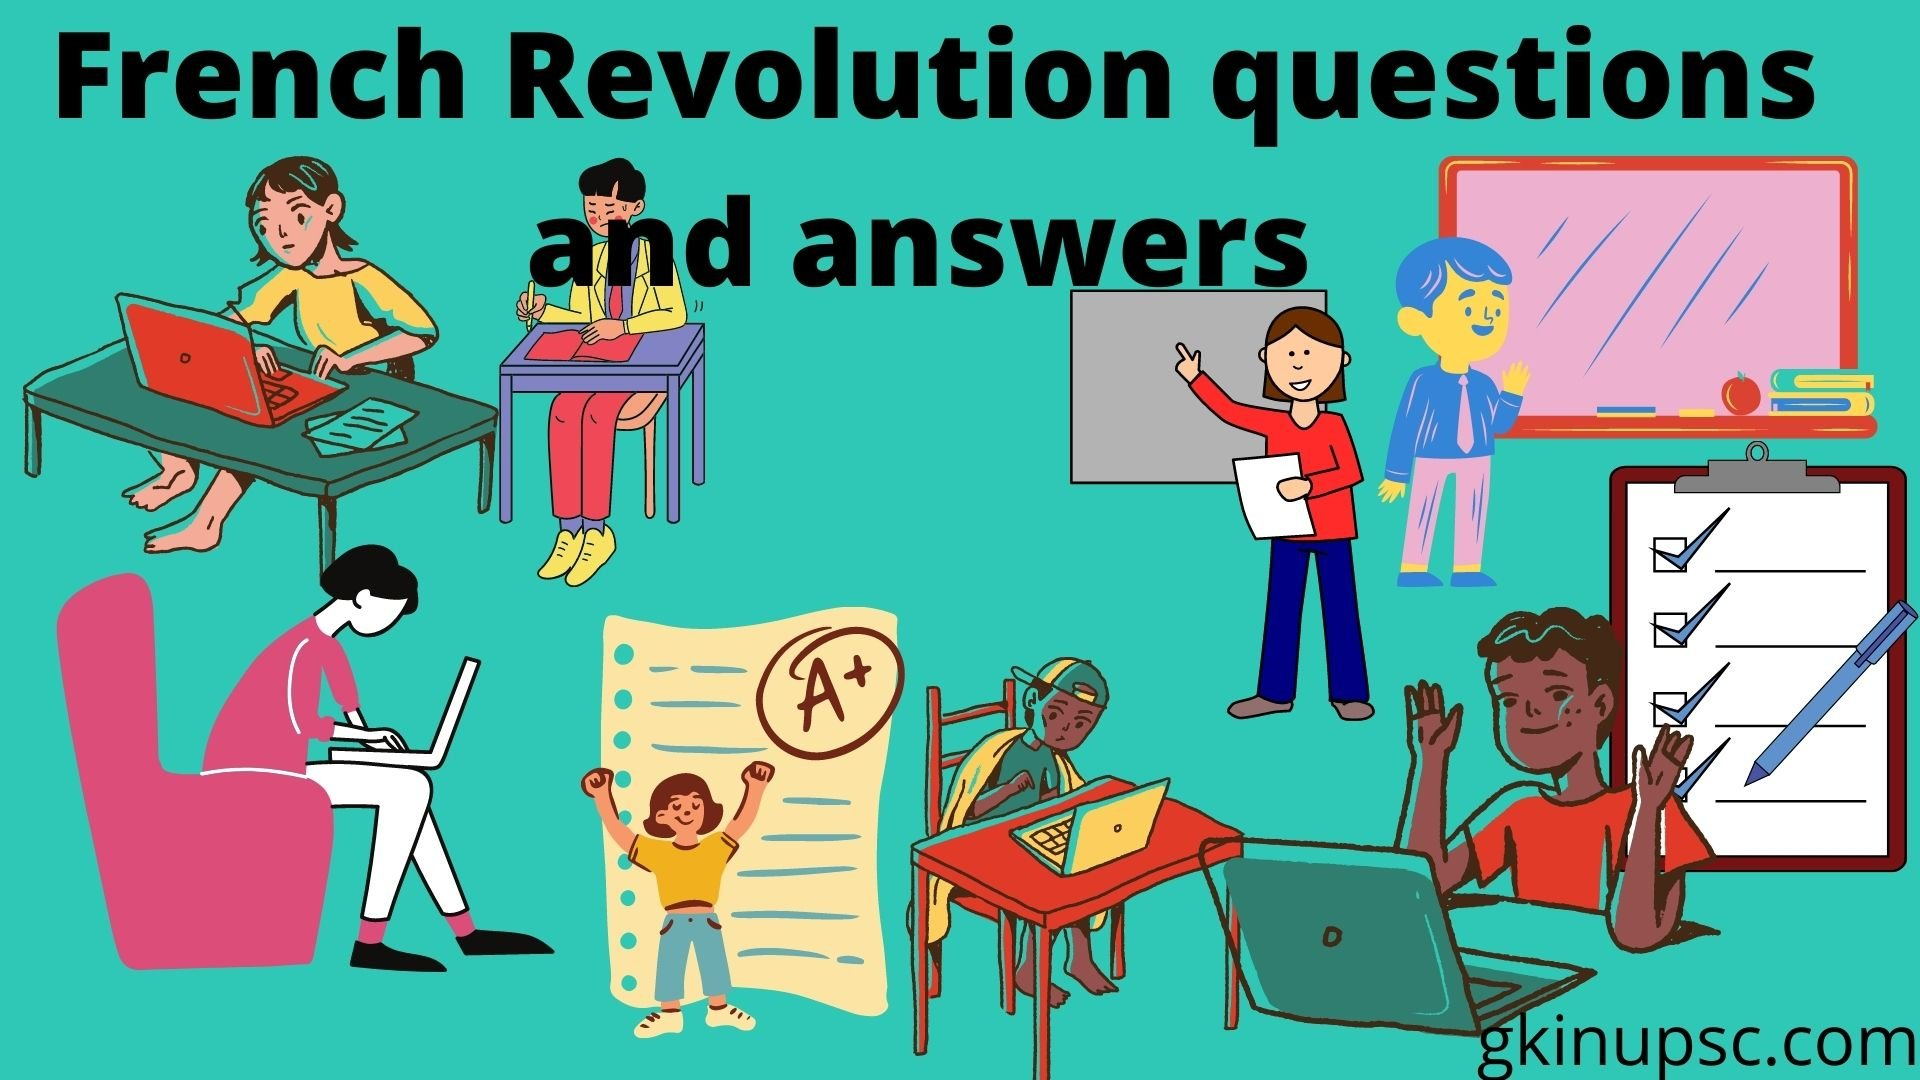 French Revolution questions and answers